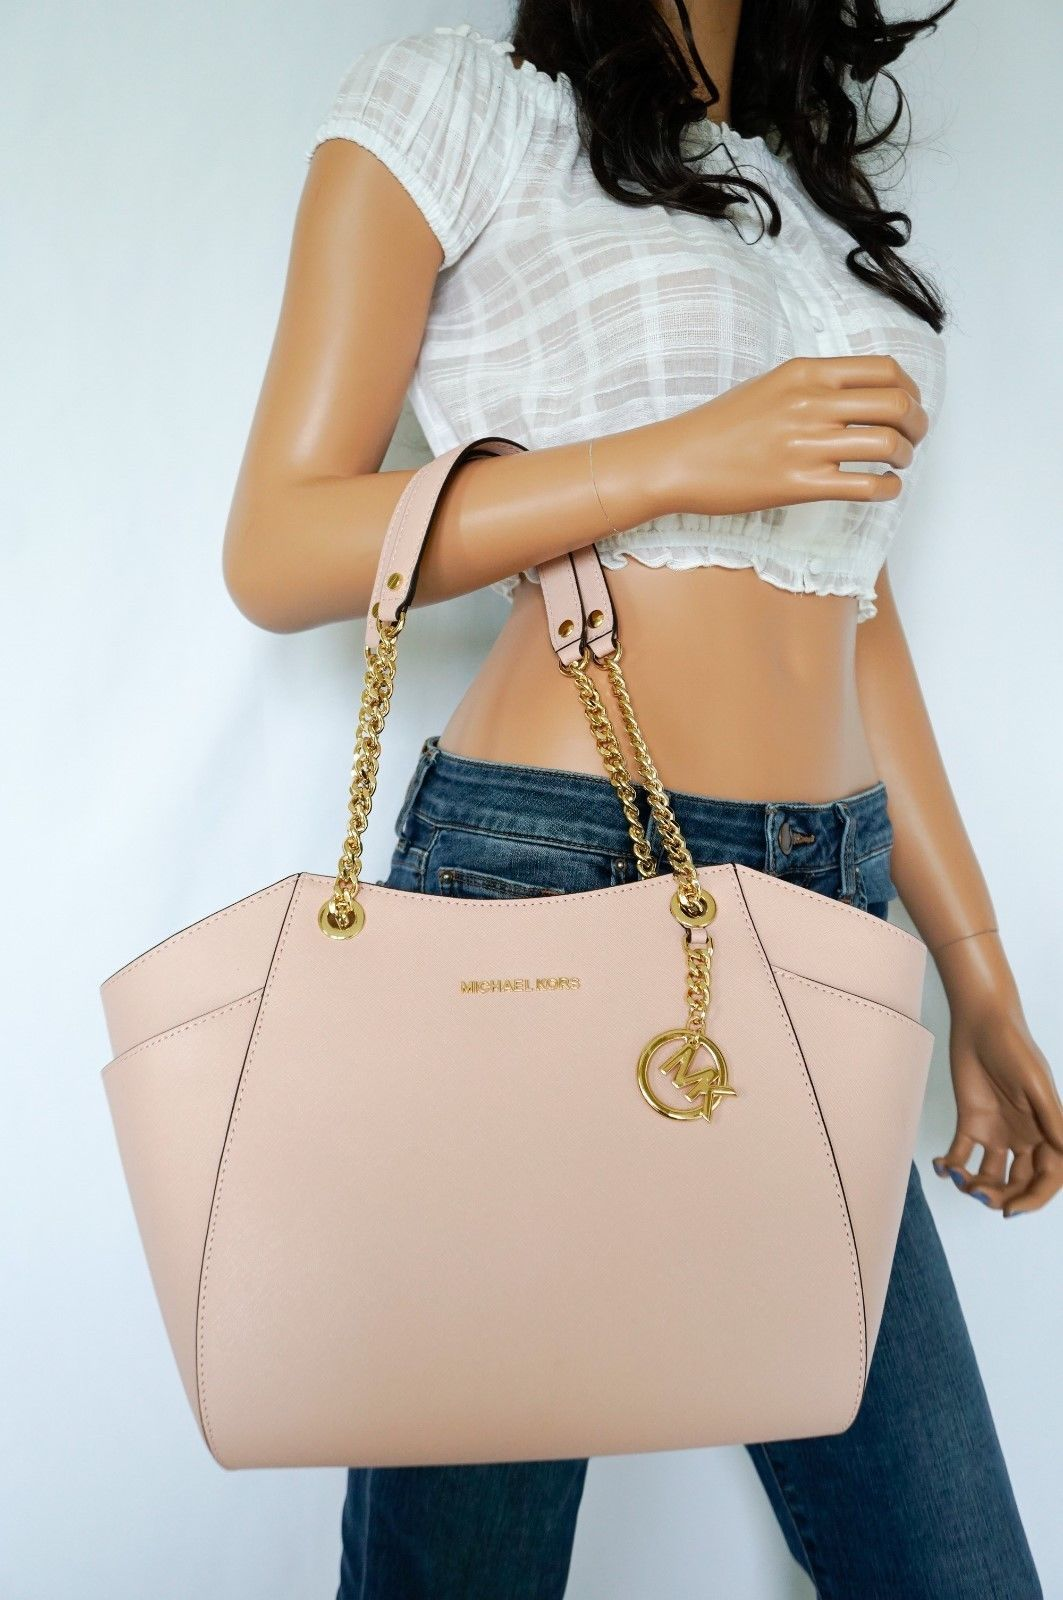 87b251cf72e9 57. 57. Previous. MICHAEL KORS JET SET TRAVEL LARGE SHOULDER CHAIN LEATHER  TOTE BAG PASTEL PINK